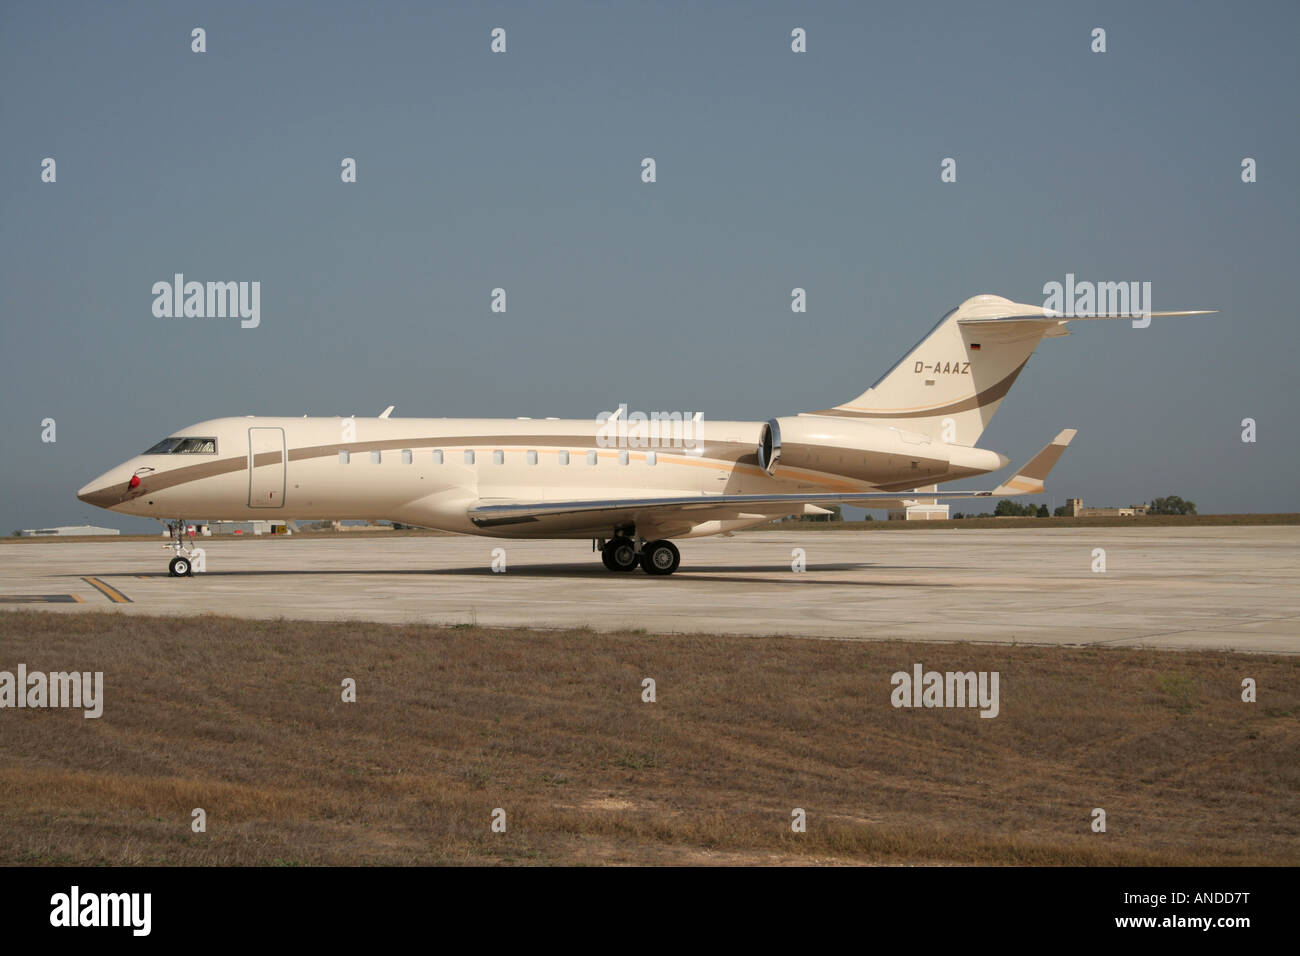 Bombardier Global Express large business jet parked on the ground. - Stock Image